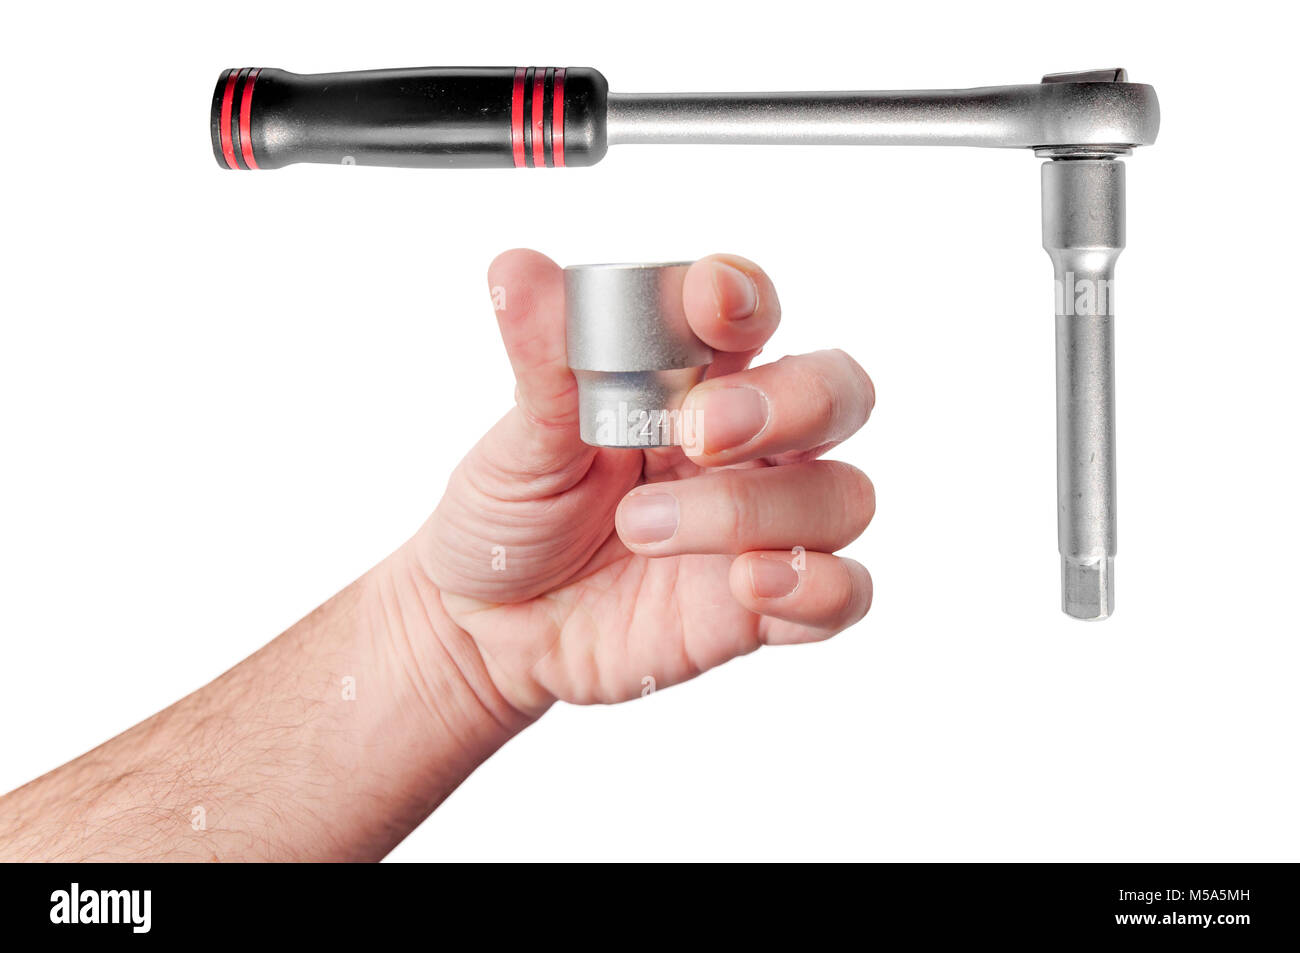 Hand holding replaceable head of automotive mechanic tool for maintenance and repair wrench - Stock Image